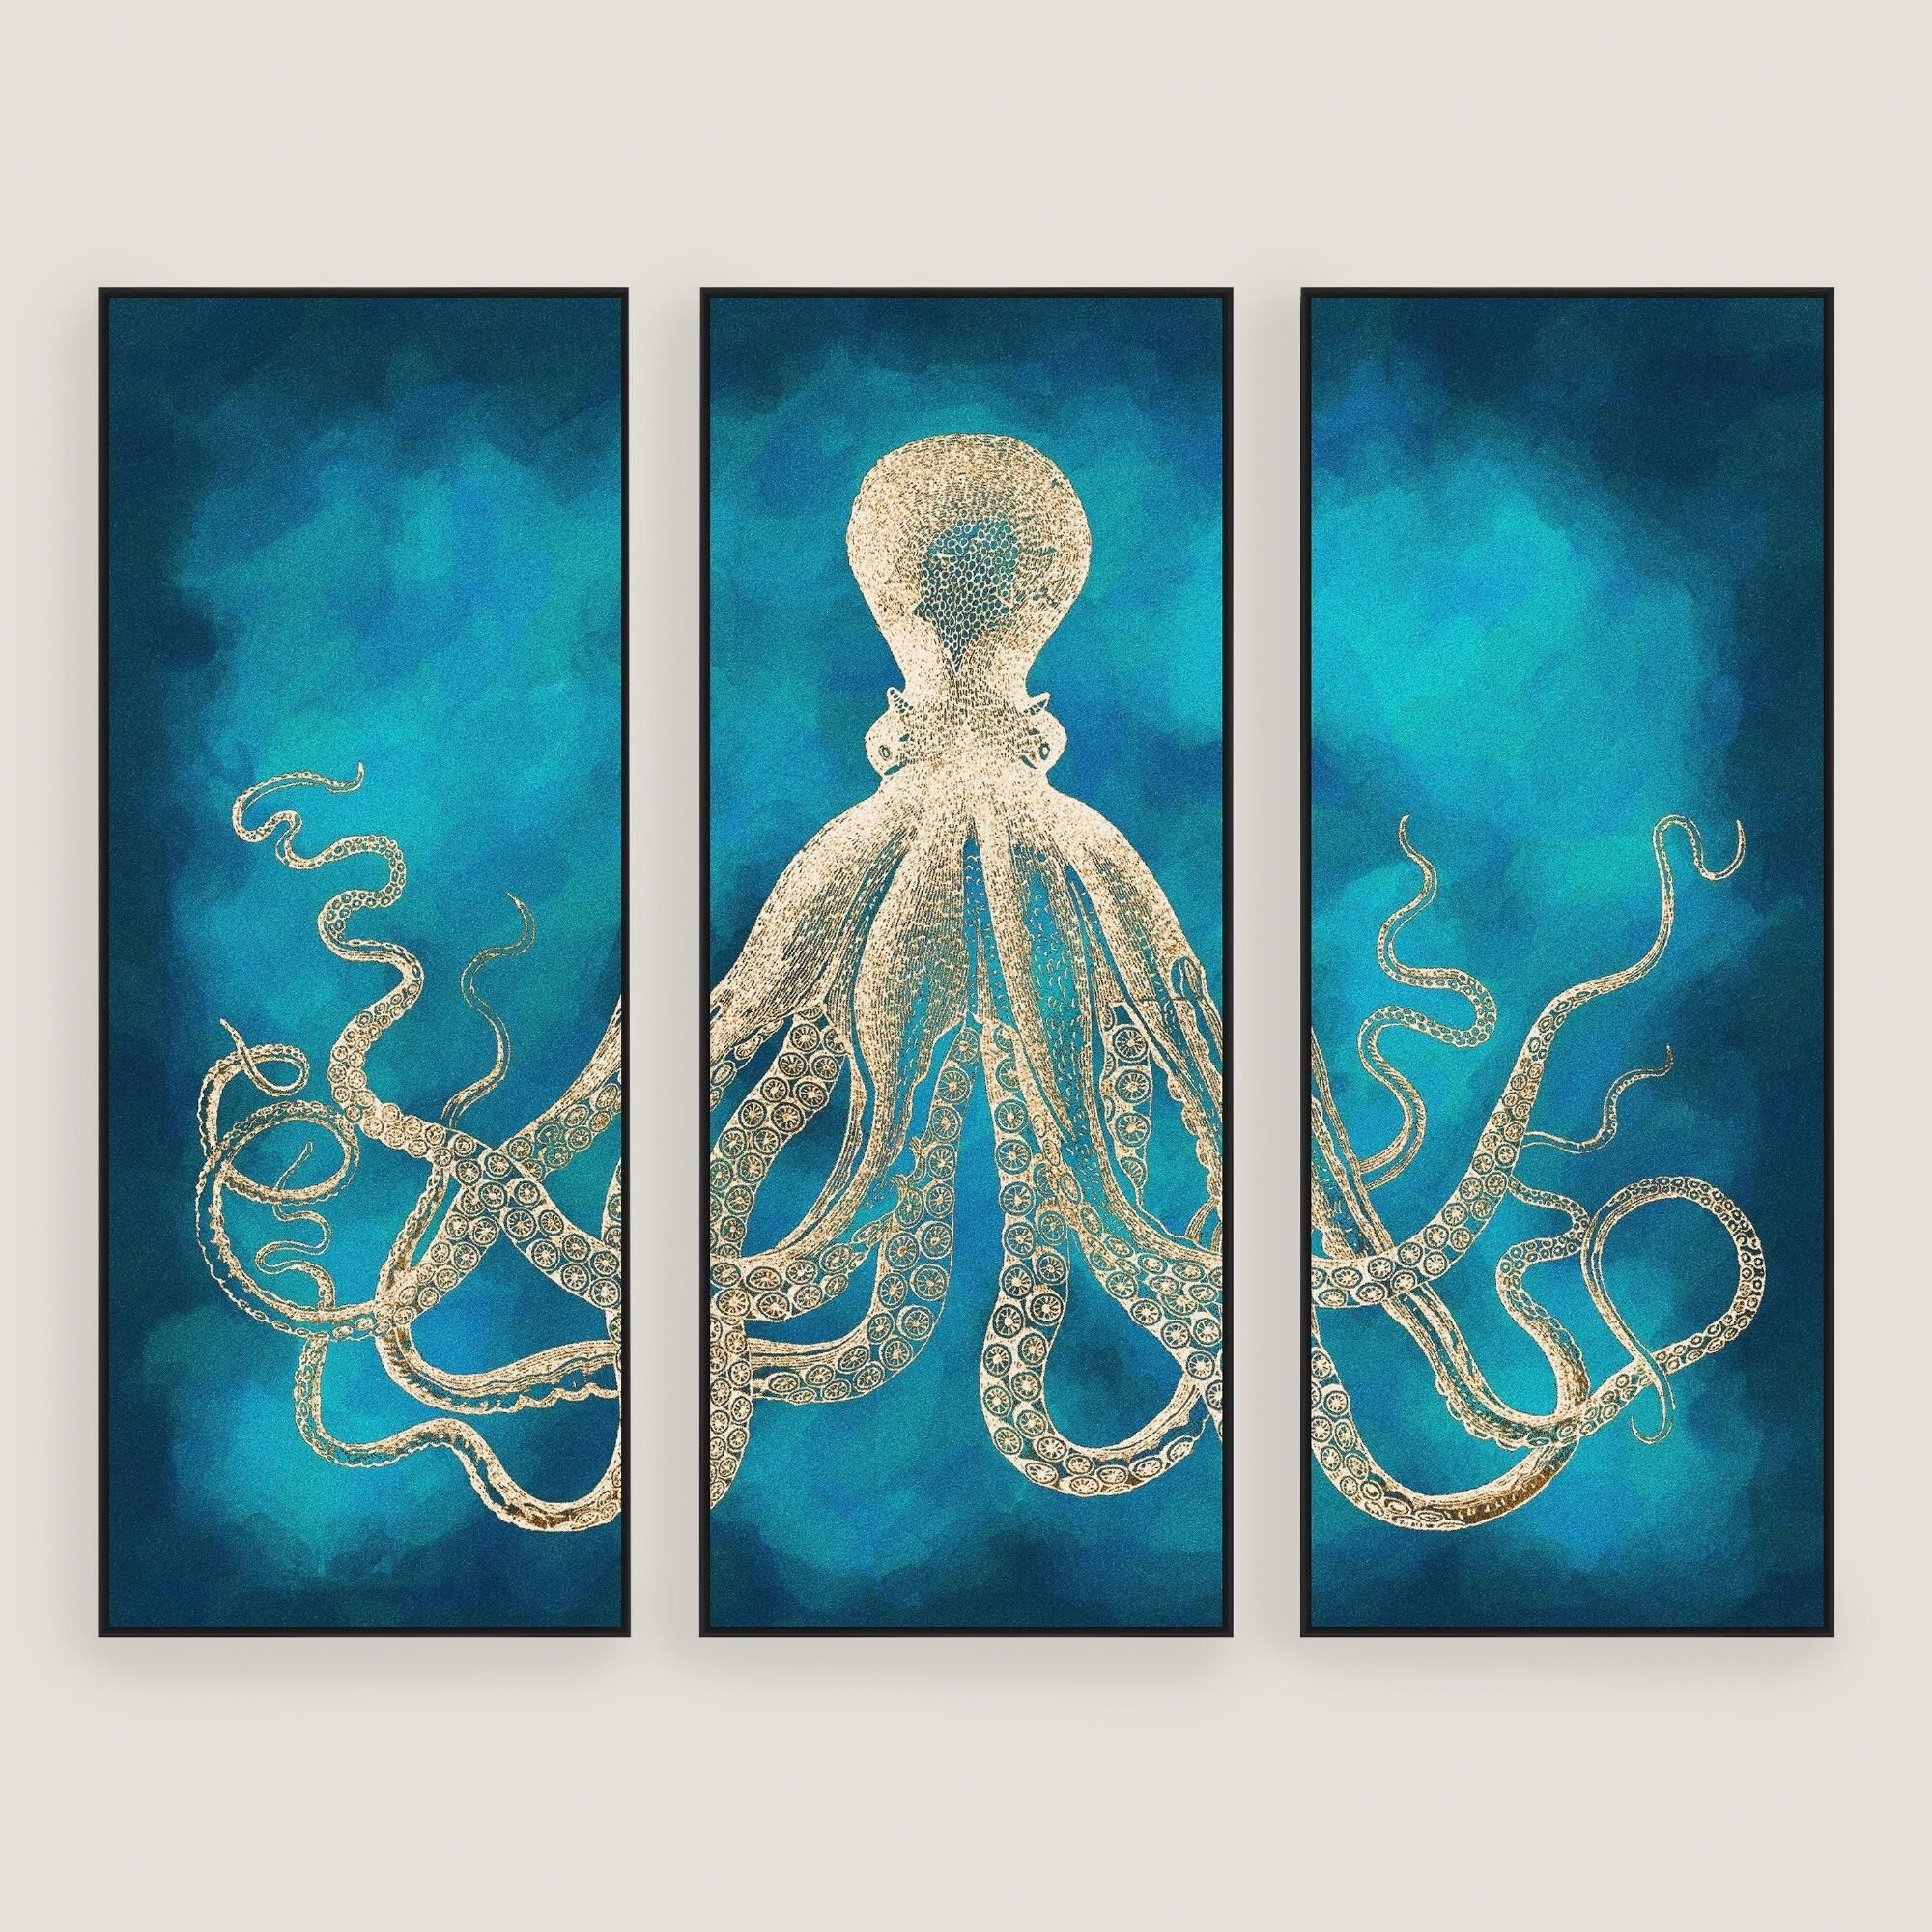 Octopus Sea Life Wall Art 3 Piece: Blueworld Market | Products Pertaining To 2017 Sea Life Wall Art (View 9 of 15)